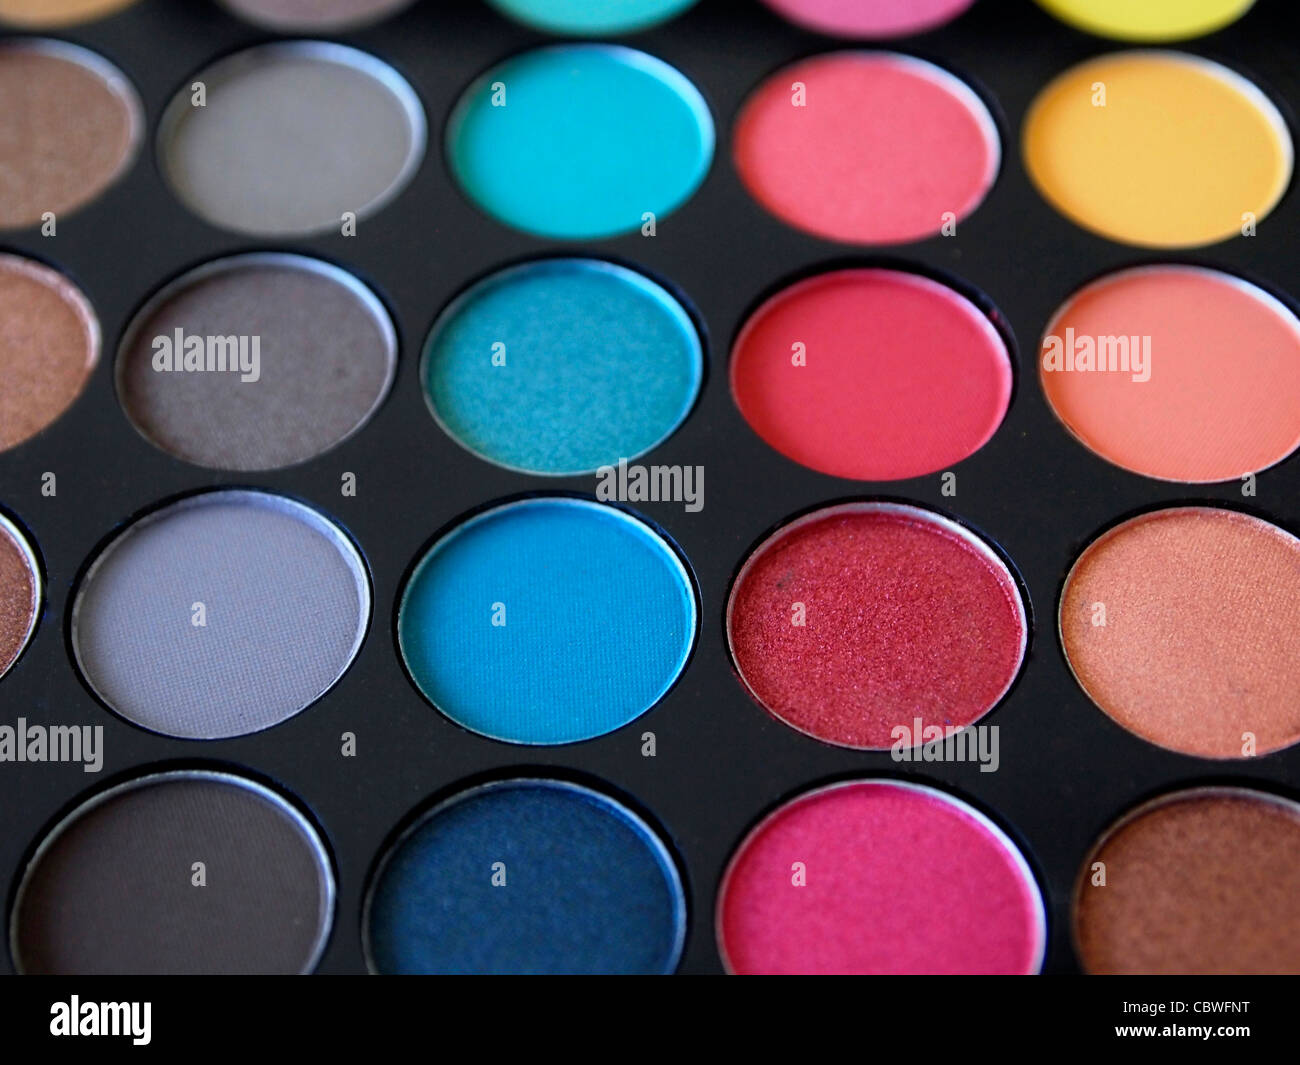 Eyeshadow box - Stock Image